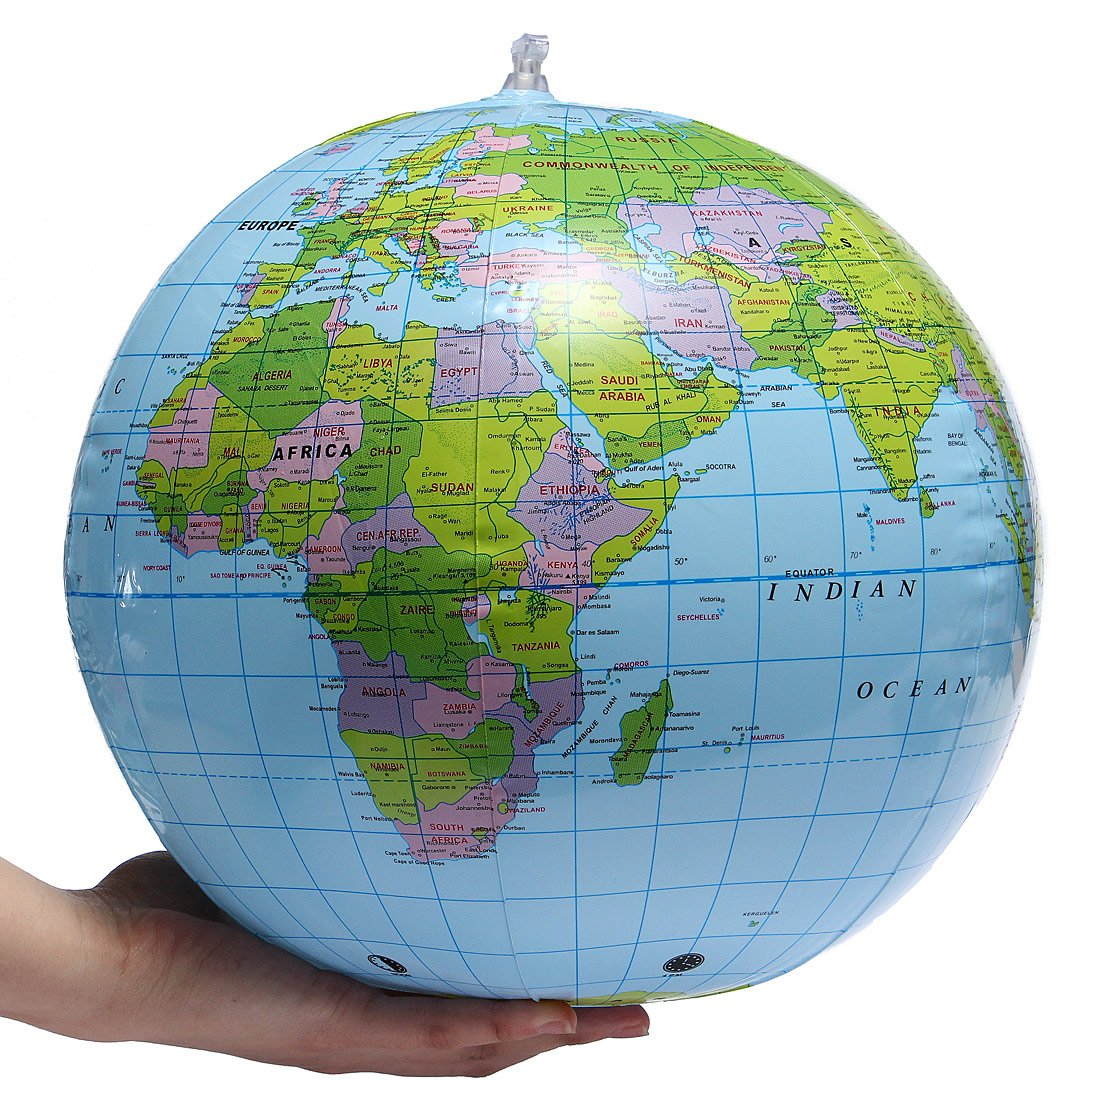 inflatable world globe earth map geography teacher aid ball toy giftcm amazoncouk toys  games. inflatable world globe earth map geography teacher aid ball toy